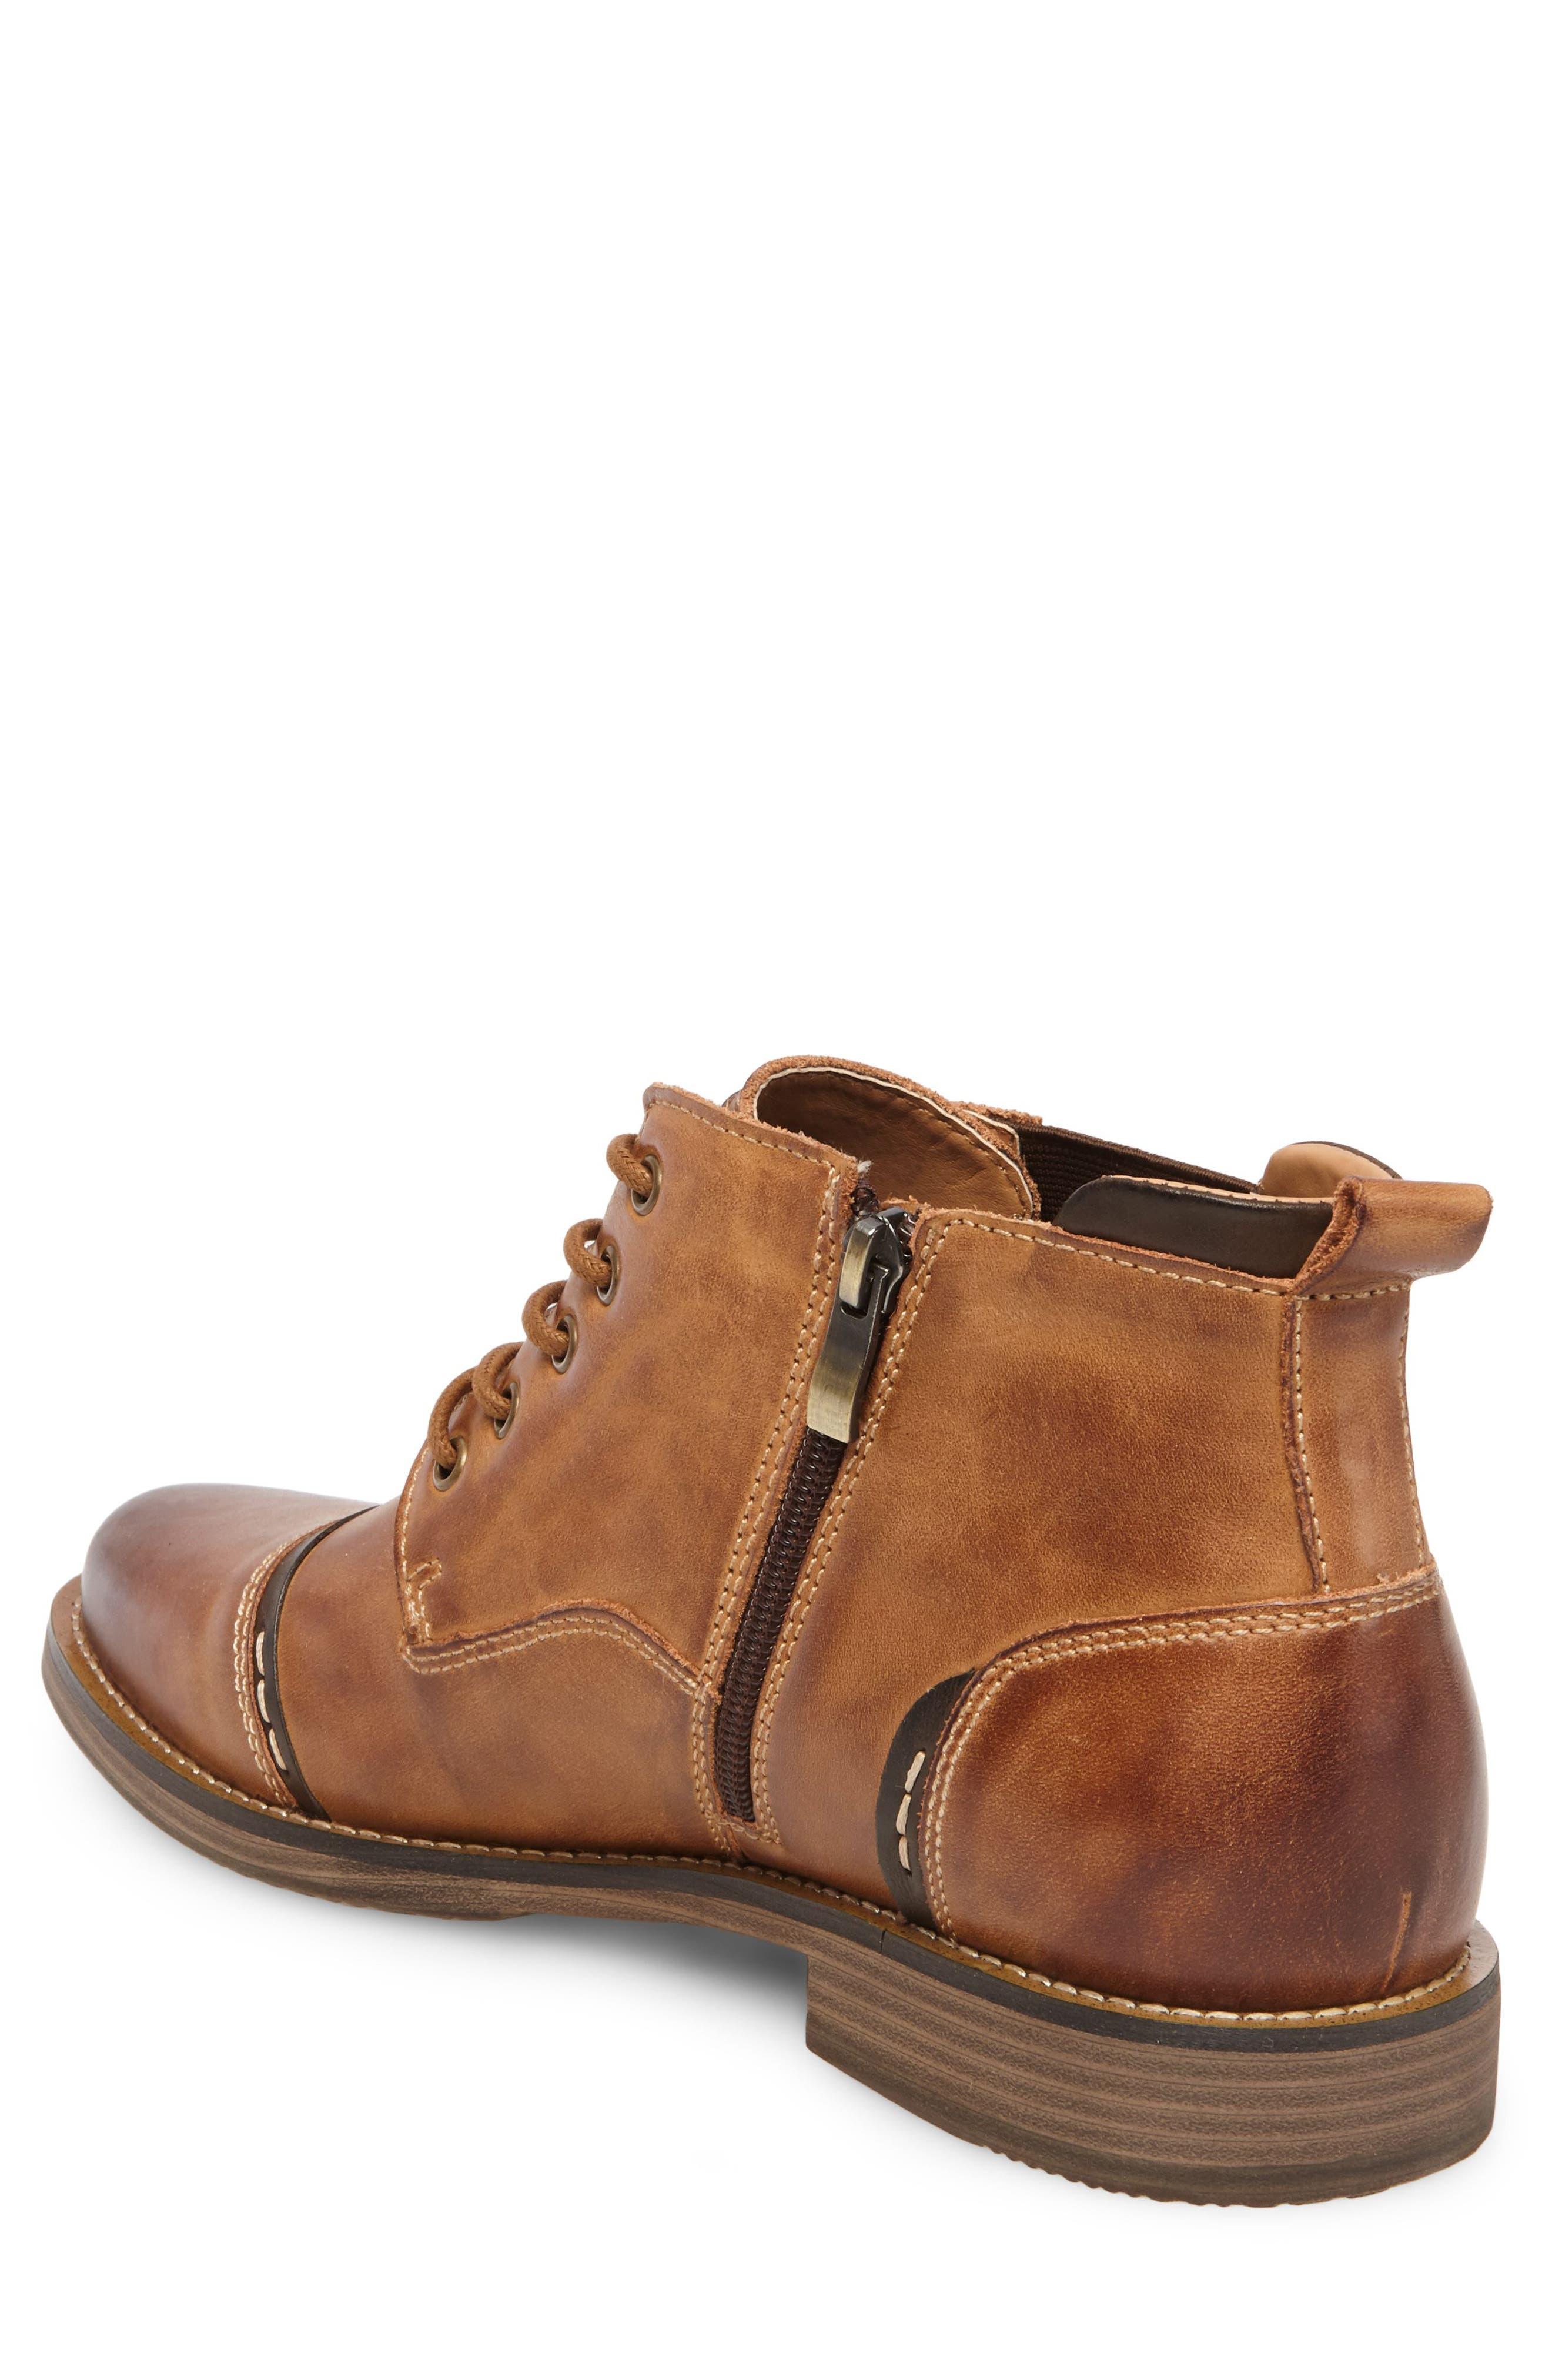 Proxy Cap Toe Boot,                             Alternate thumbnail 2, color,                             200